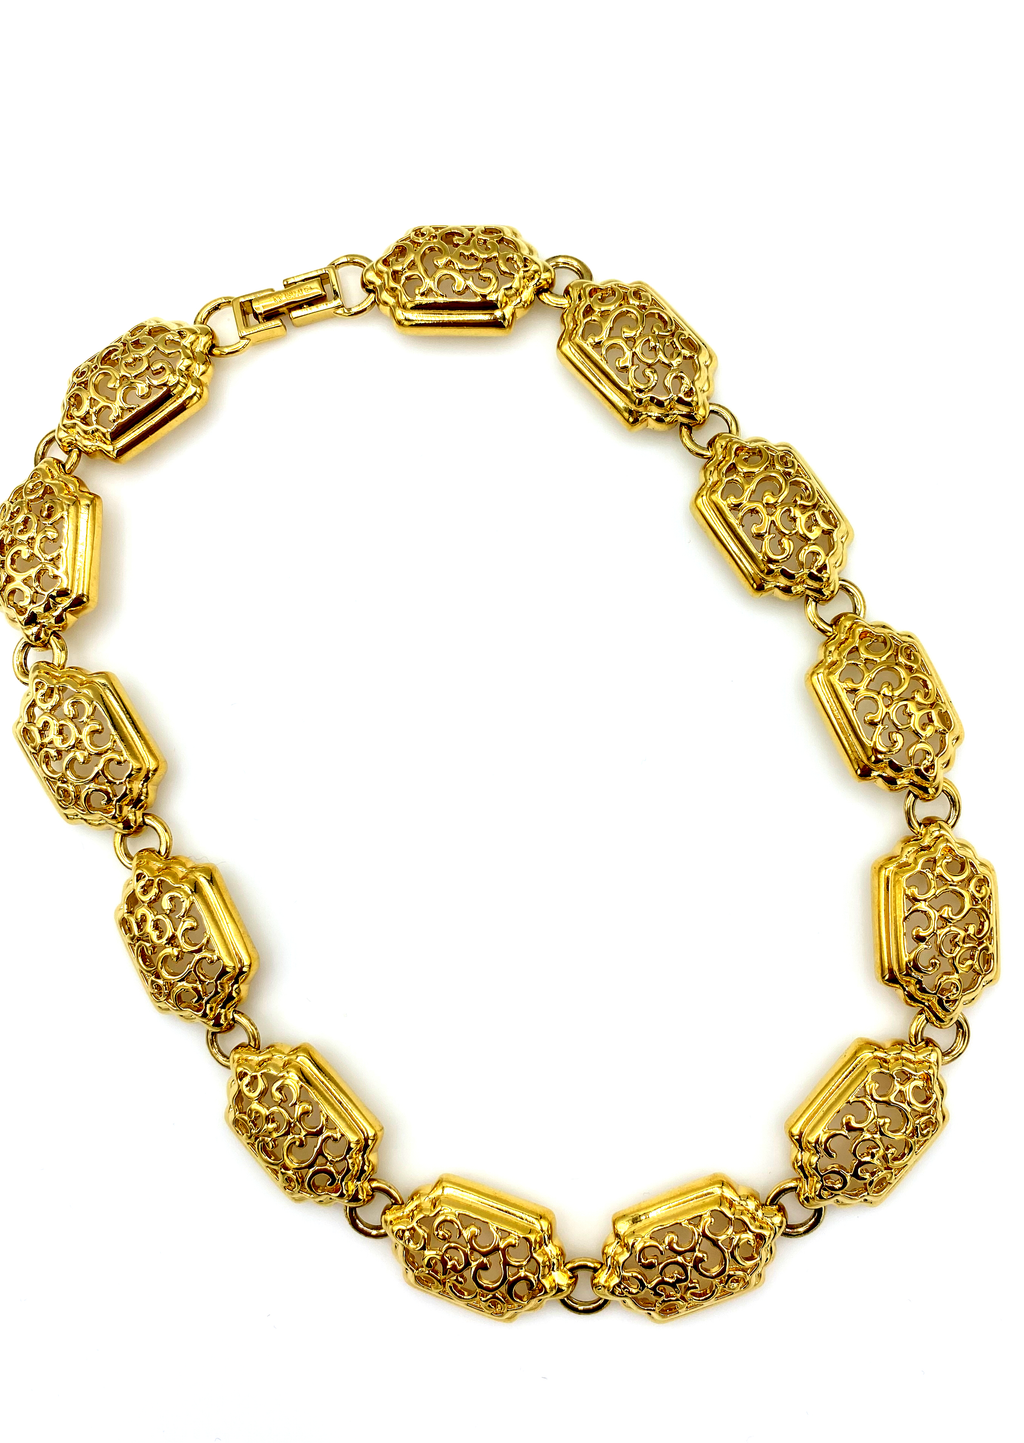 D'Orlan vintage Classic Gold Chunky Layering Necklace-Sustainable Fashion with Vintage Style-Trending Designer Fashion-24 Wishes